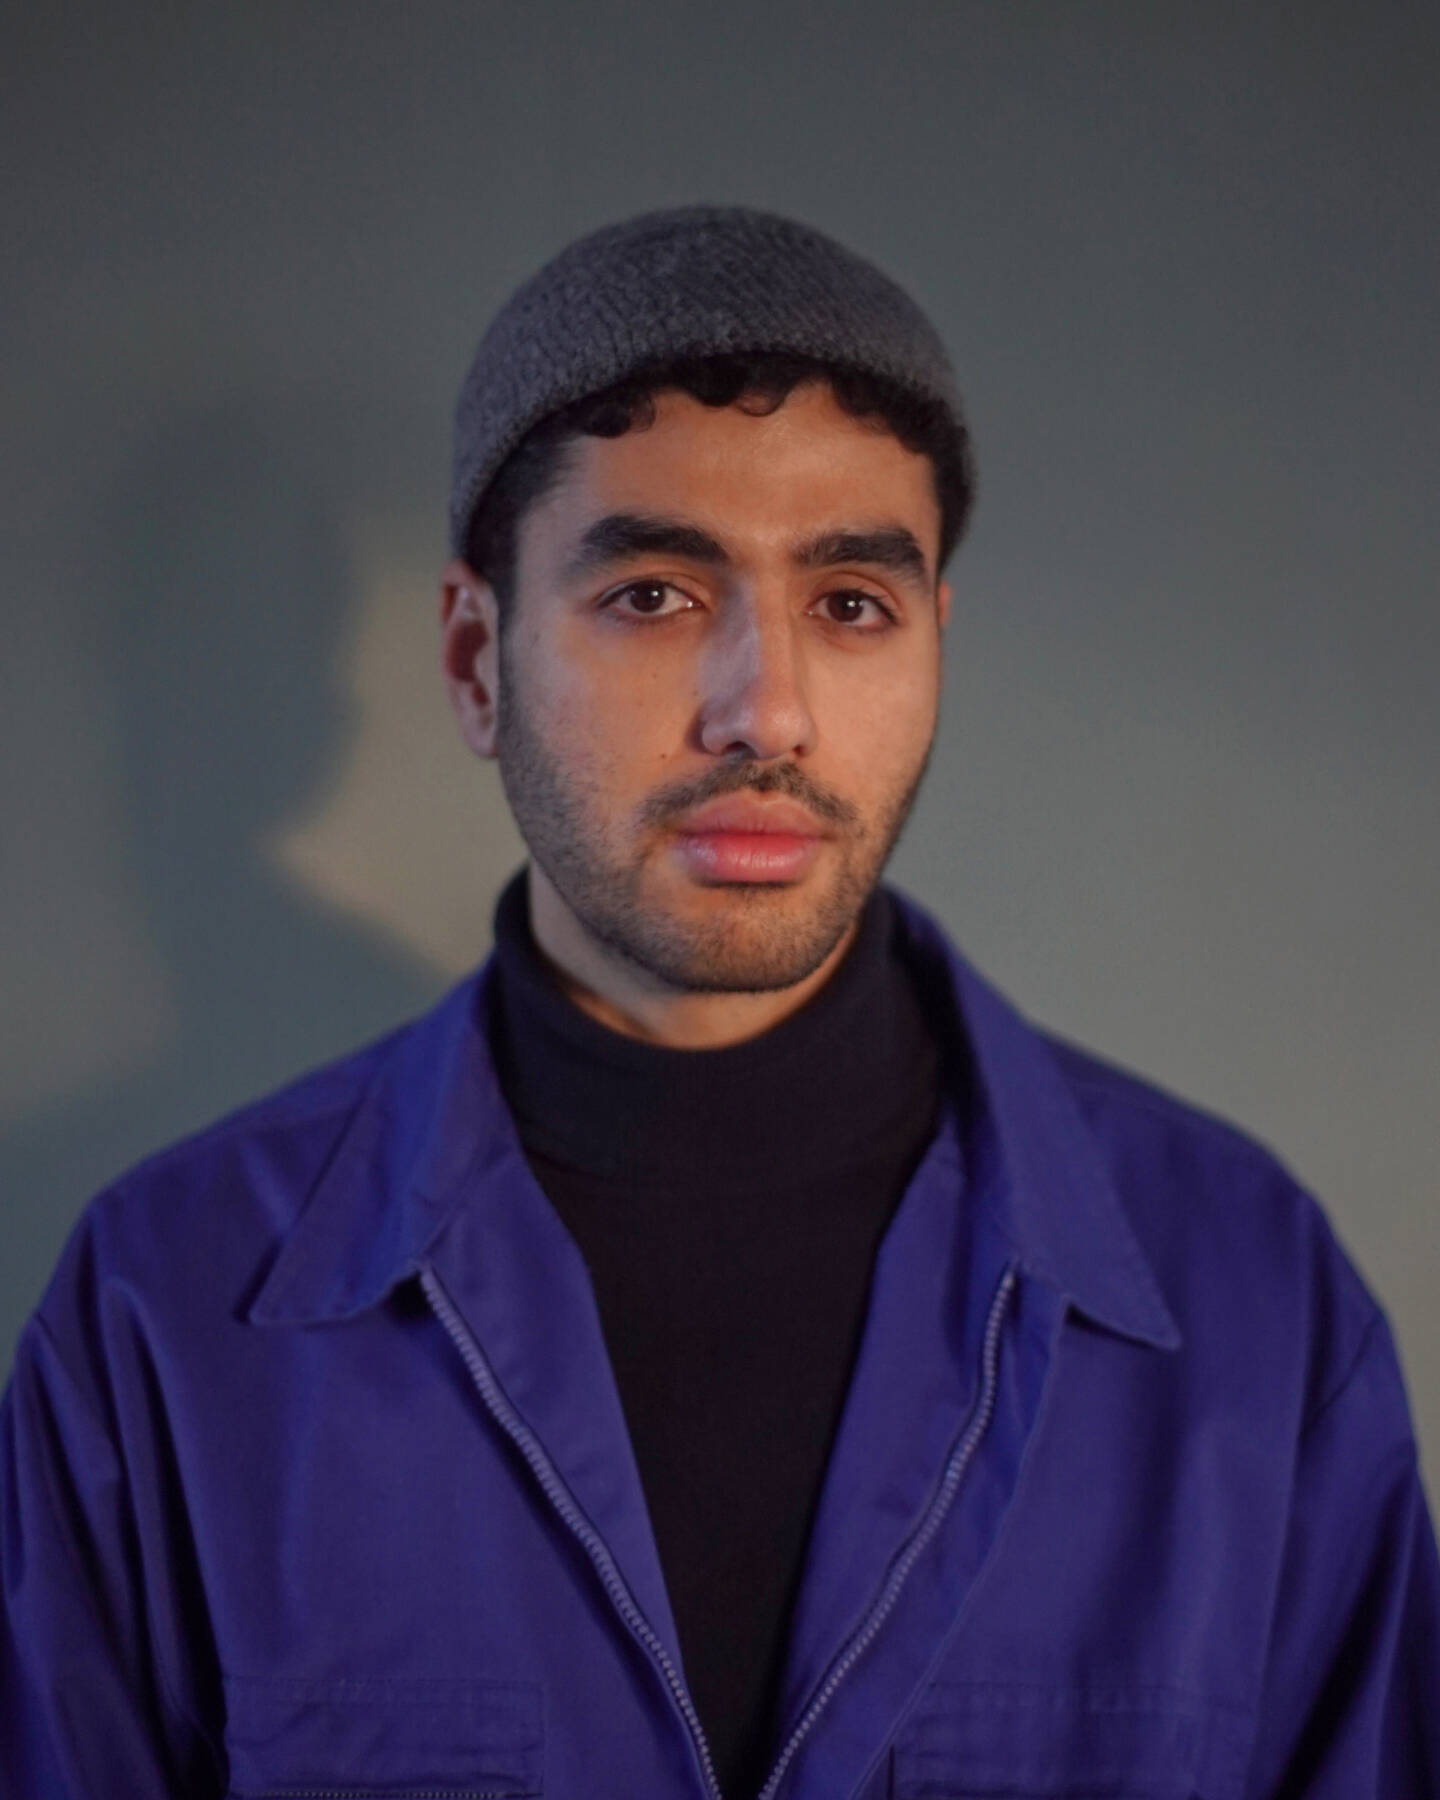 Hicham in a blue jacket and grey skull cap.